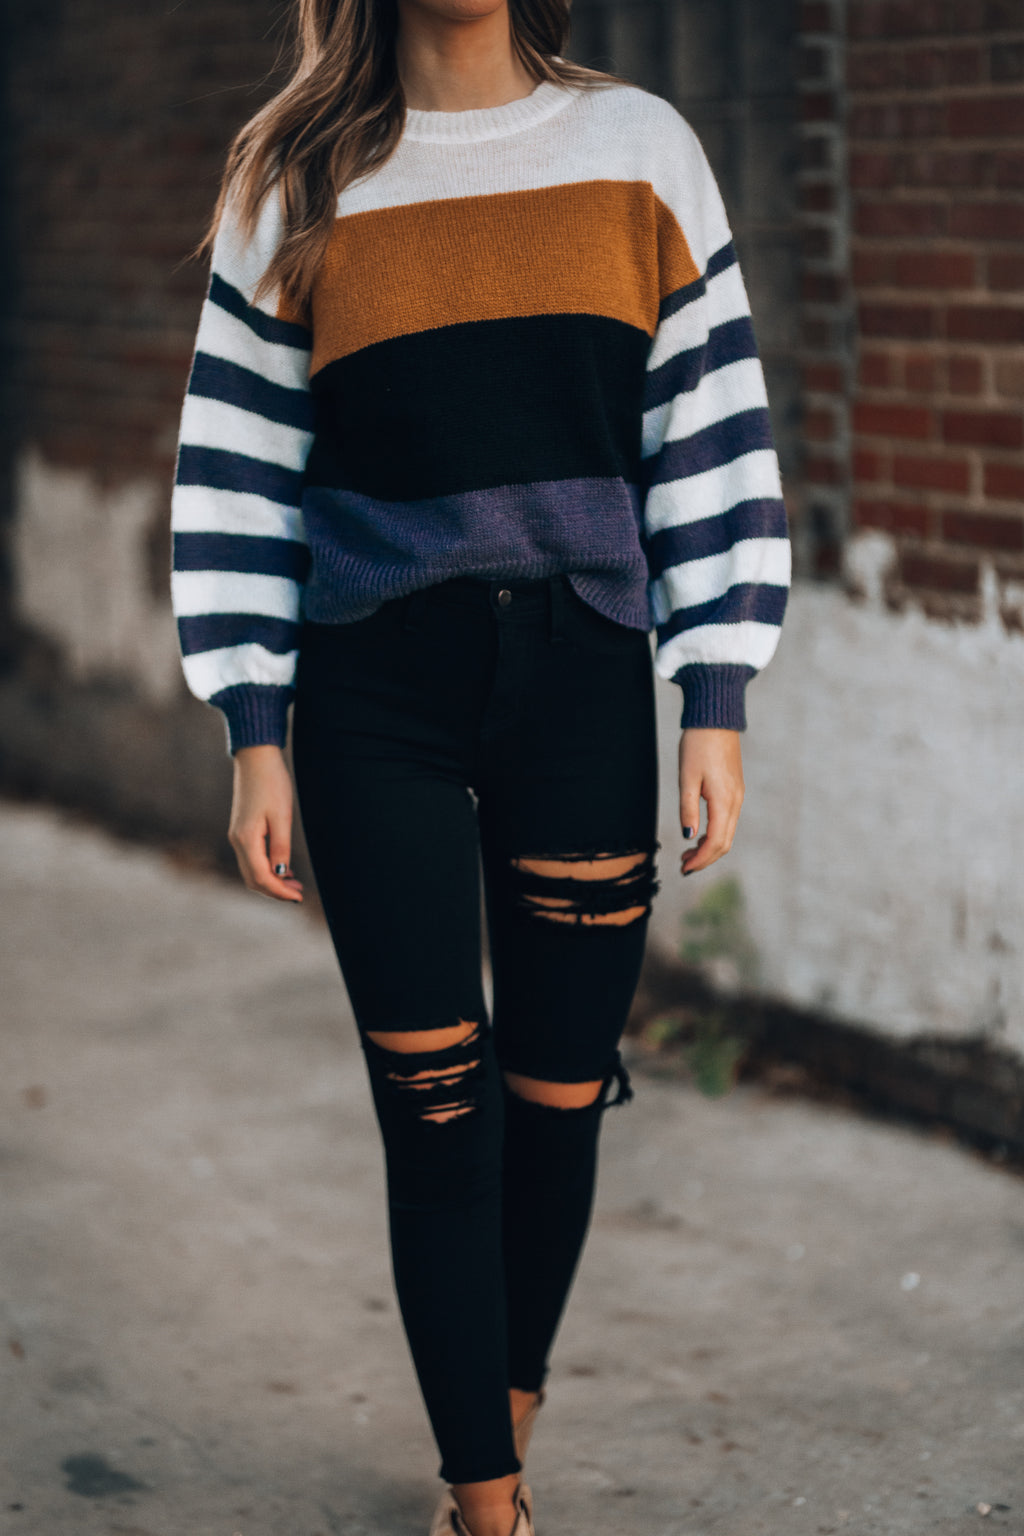 Dana Striped Sweater - FINAL SALE